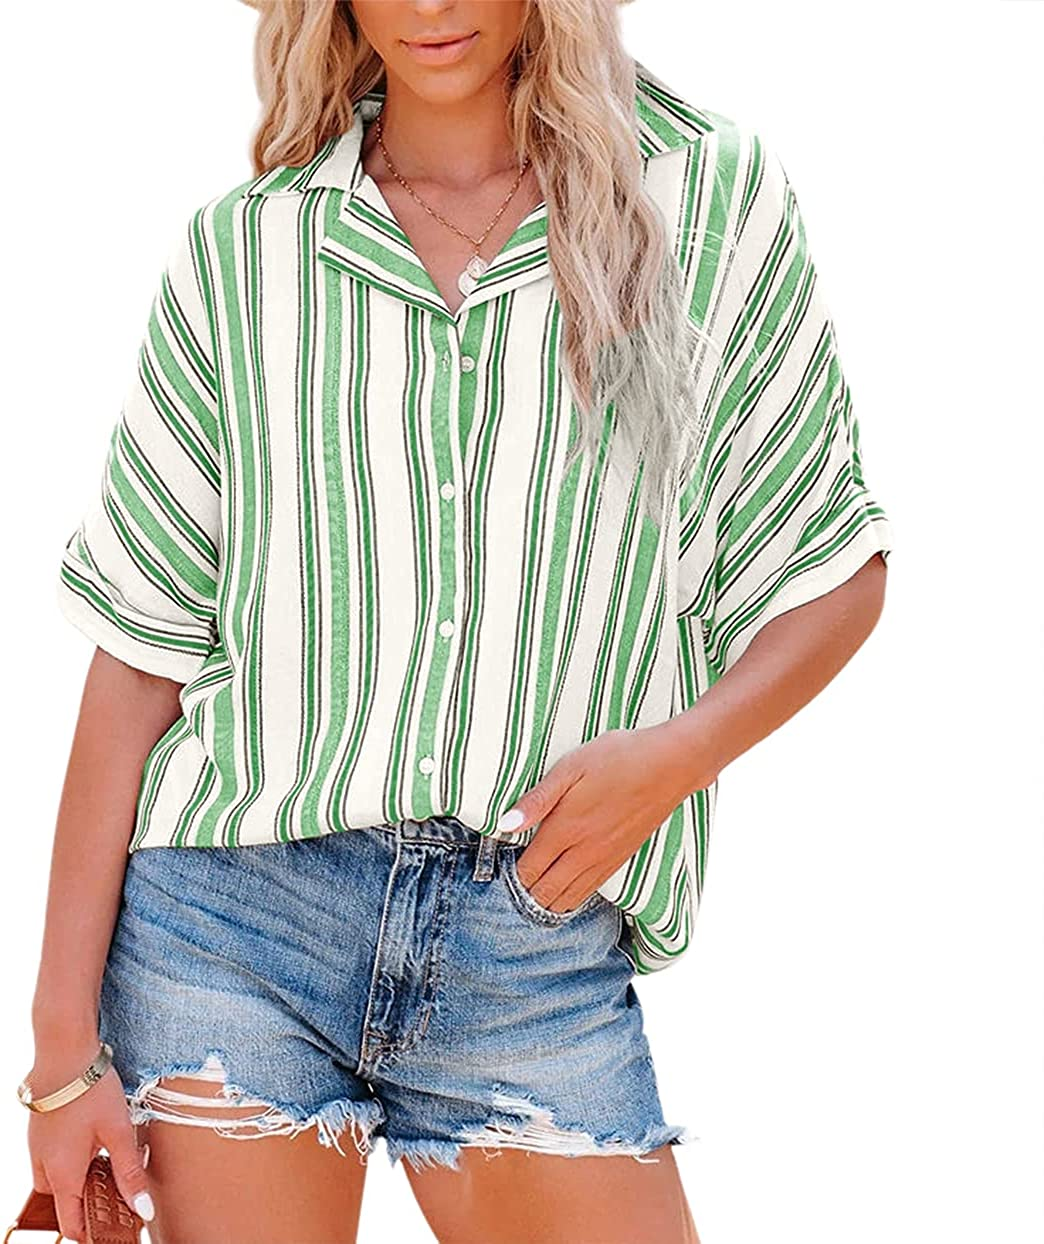 Women's Summer Tops Chiffon Blouses Vacation Striped Button Down Tshirts